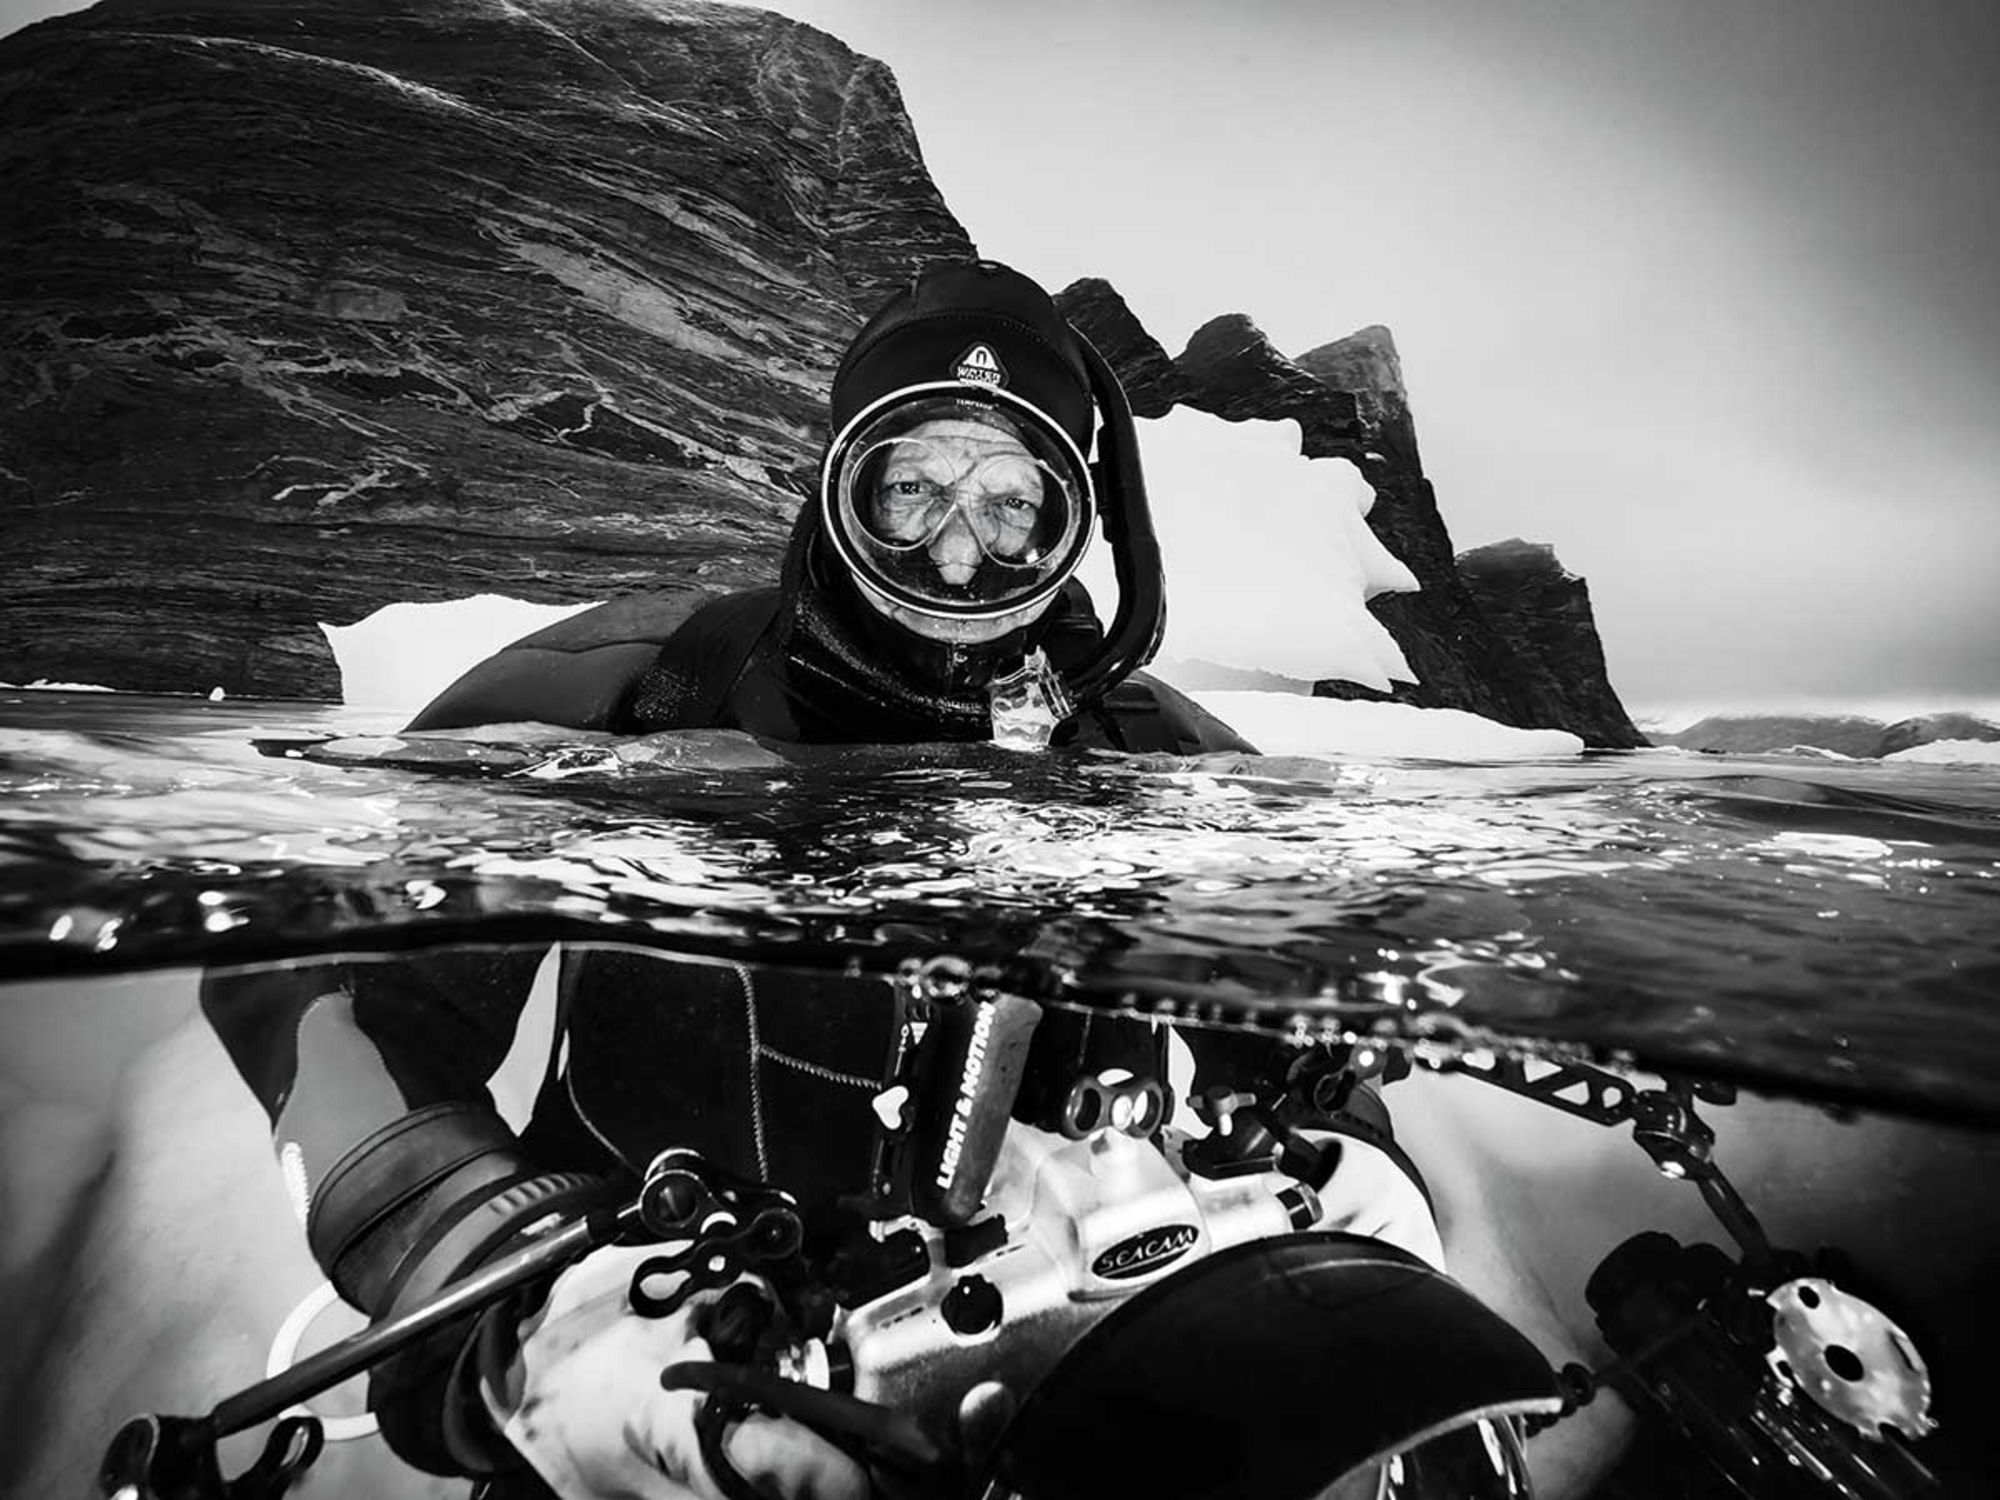 Scuba Diving Legends Describe their Most Unforgettable Dive